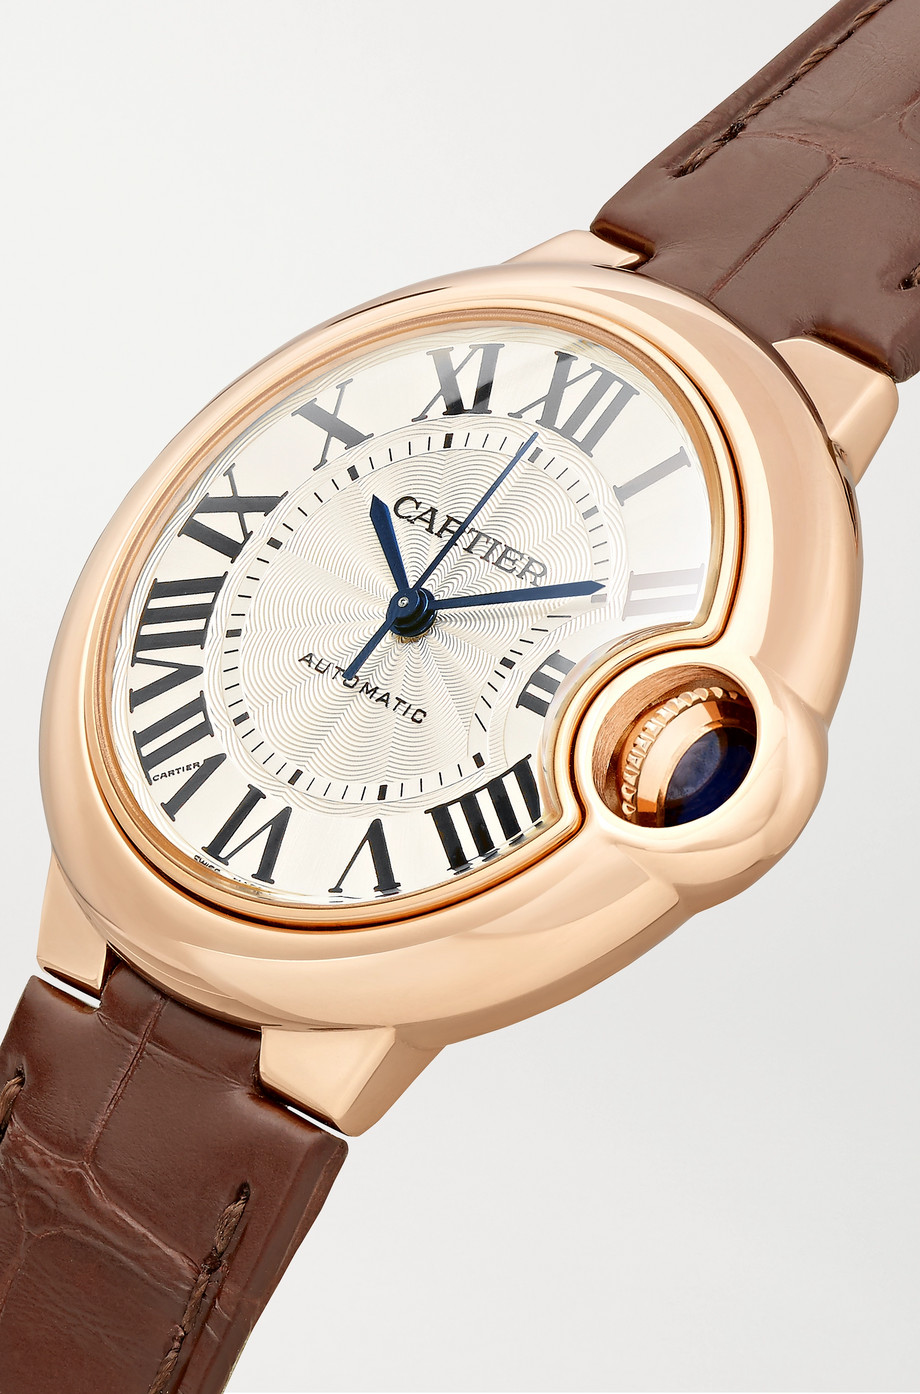 Cartier Ballon Bleu de Cartier 33mm 18-karat pink gold and alligator watch